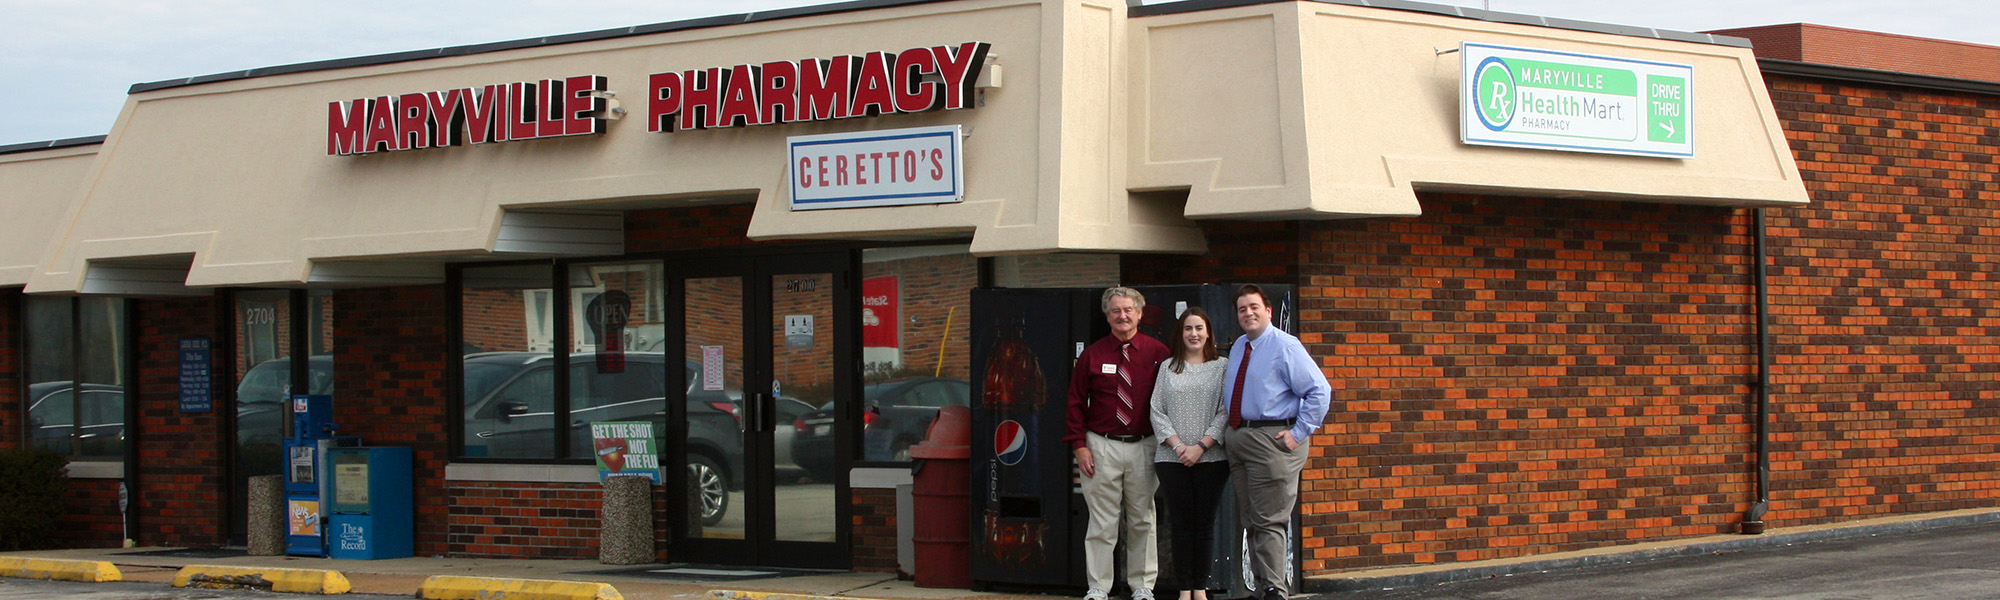 About Maryville IL Pharmacy